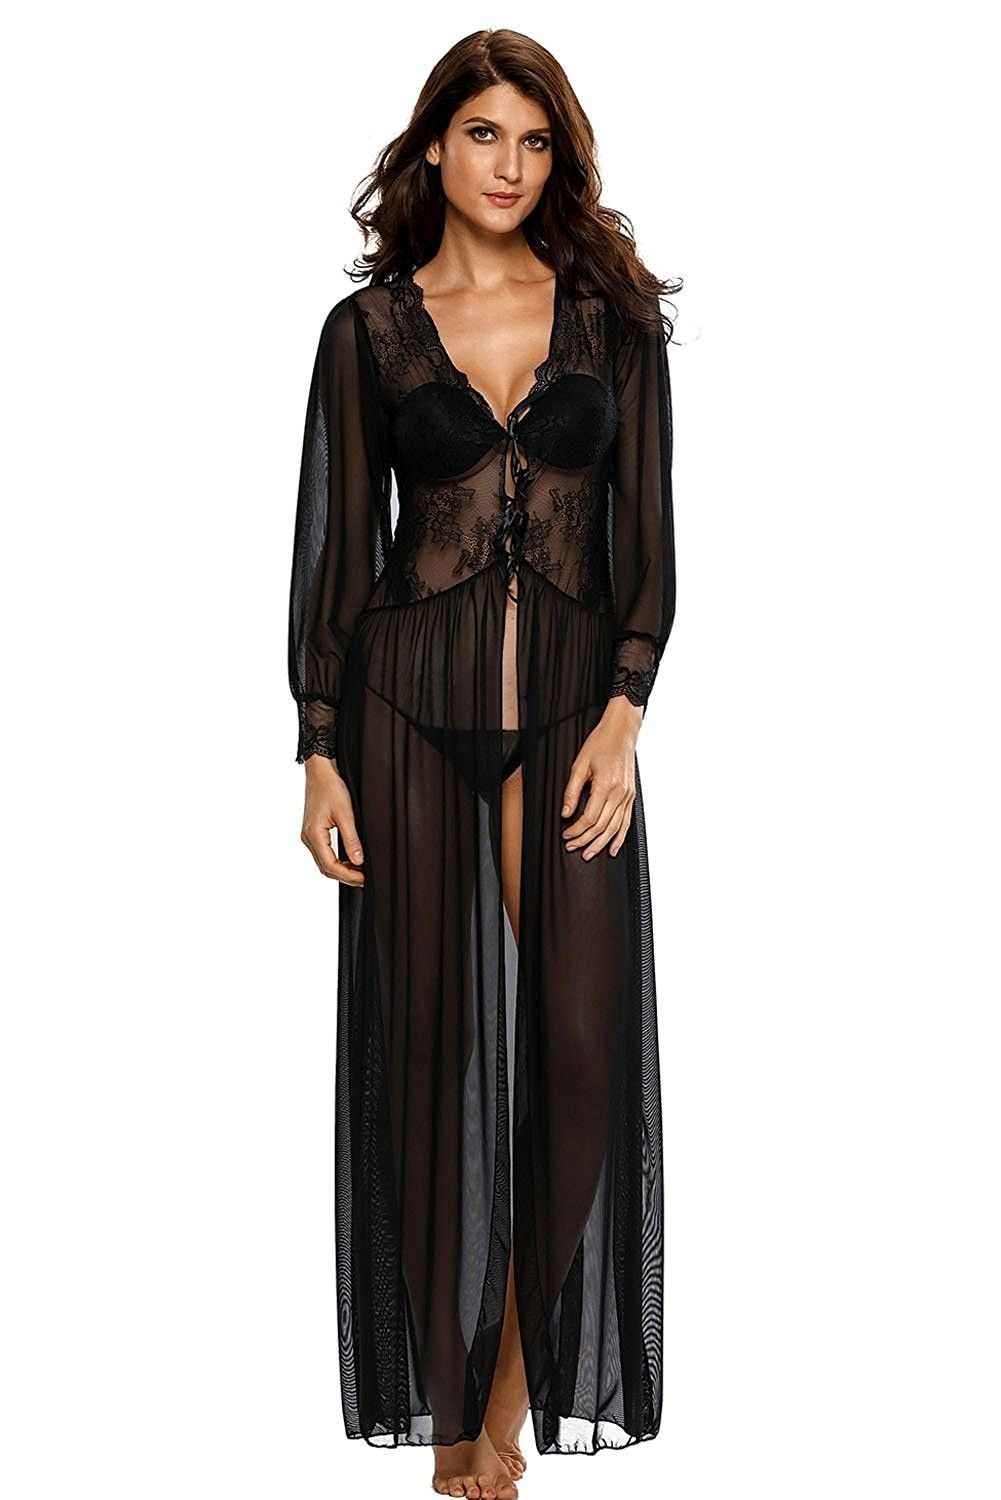 Womens Sexy Sheer Long Sleeve Gown Dress Lace Robe Lingerie Set With ... a80dc98bc7